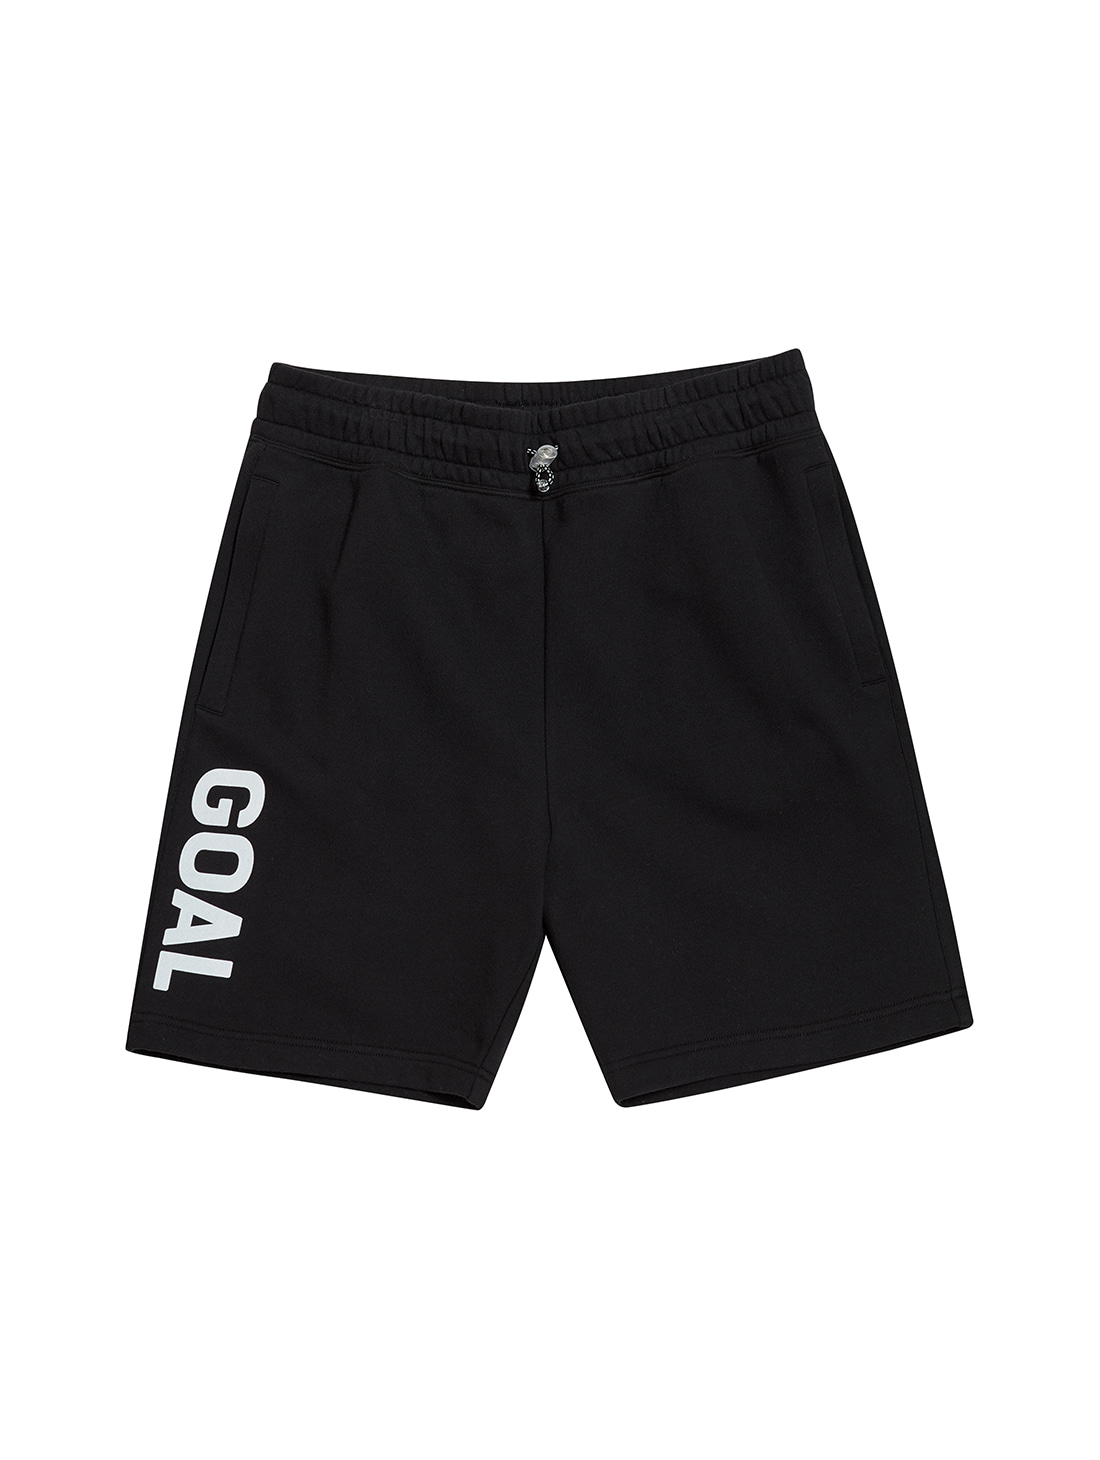 FLOCKING HALF PANTS - BLACK